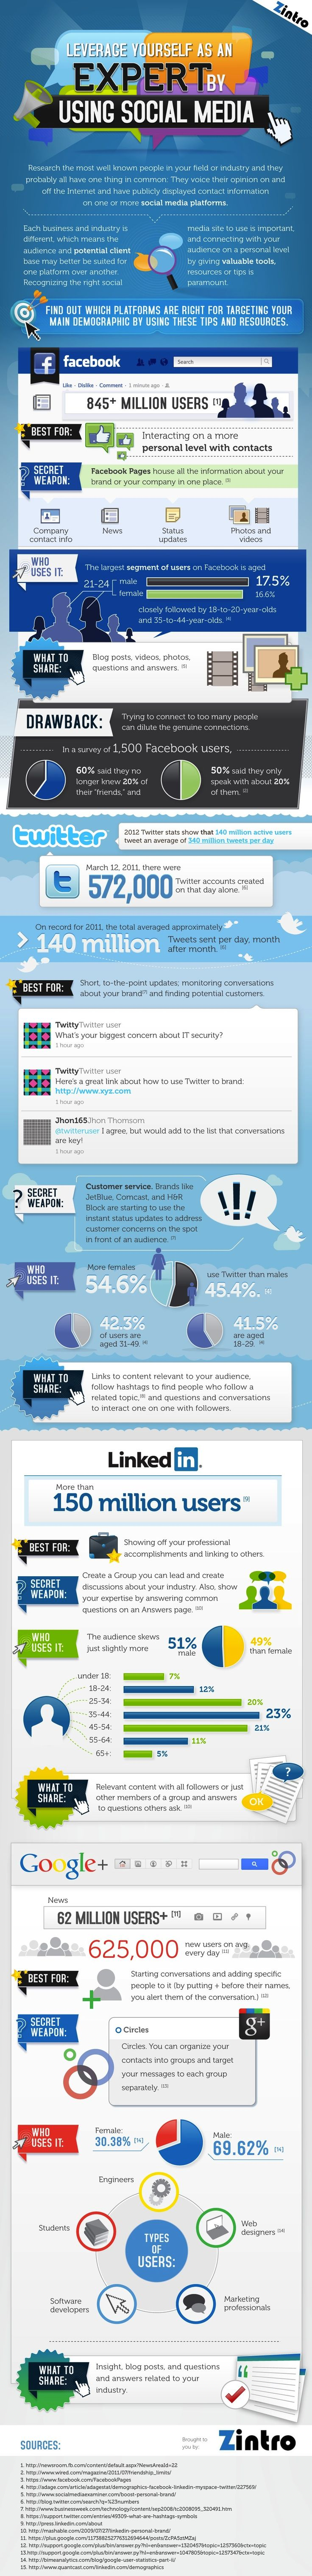 Be an expert in using #socialmedia #infographic